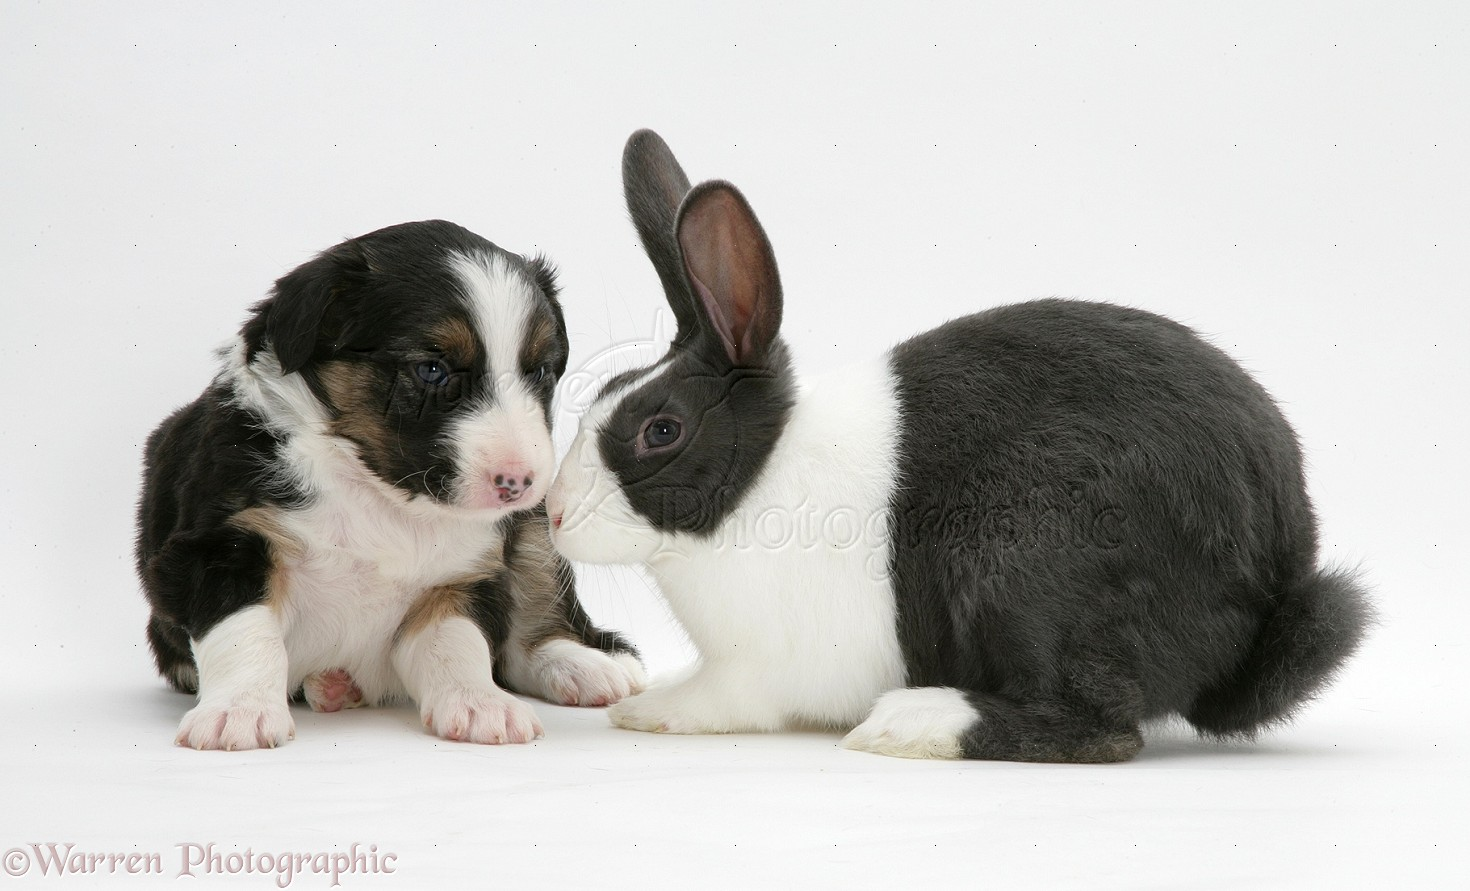 Tricolour Border Collie pup with blue Dutch rabbit photo - WP13204